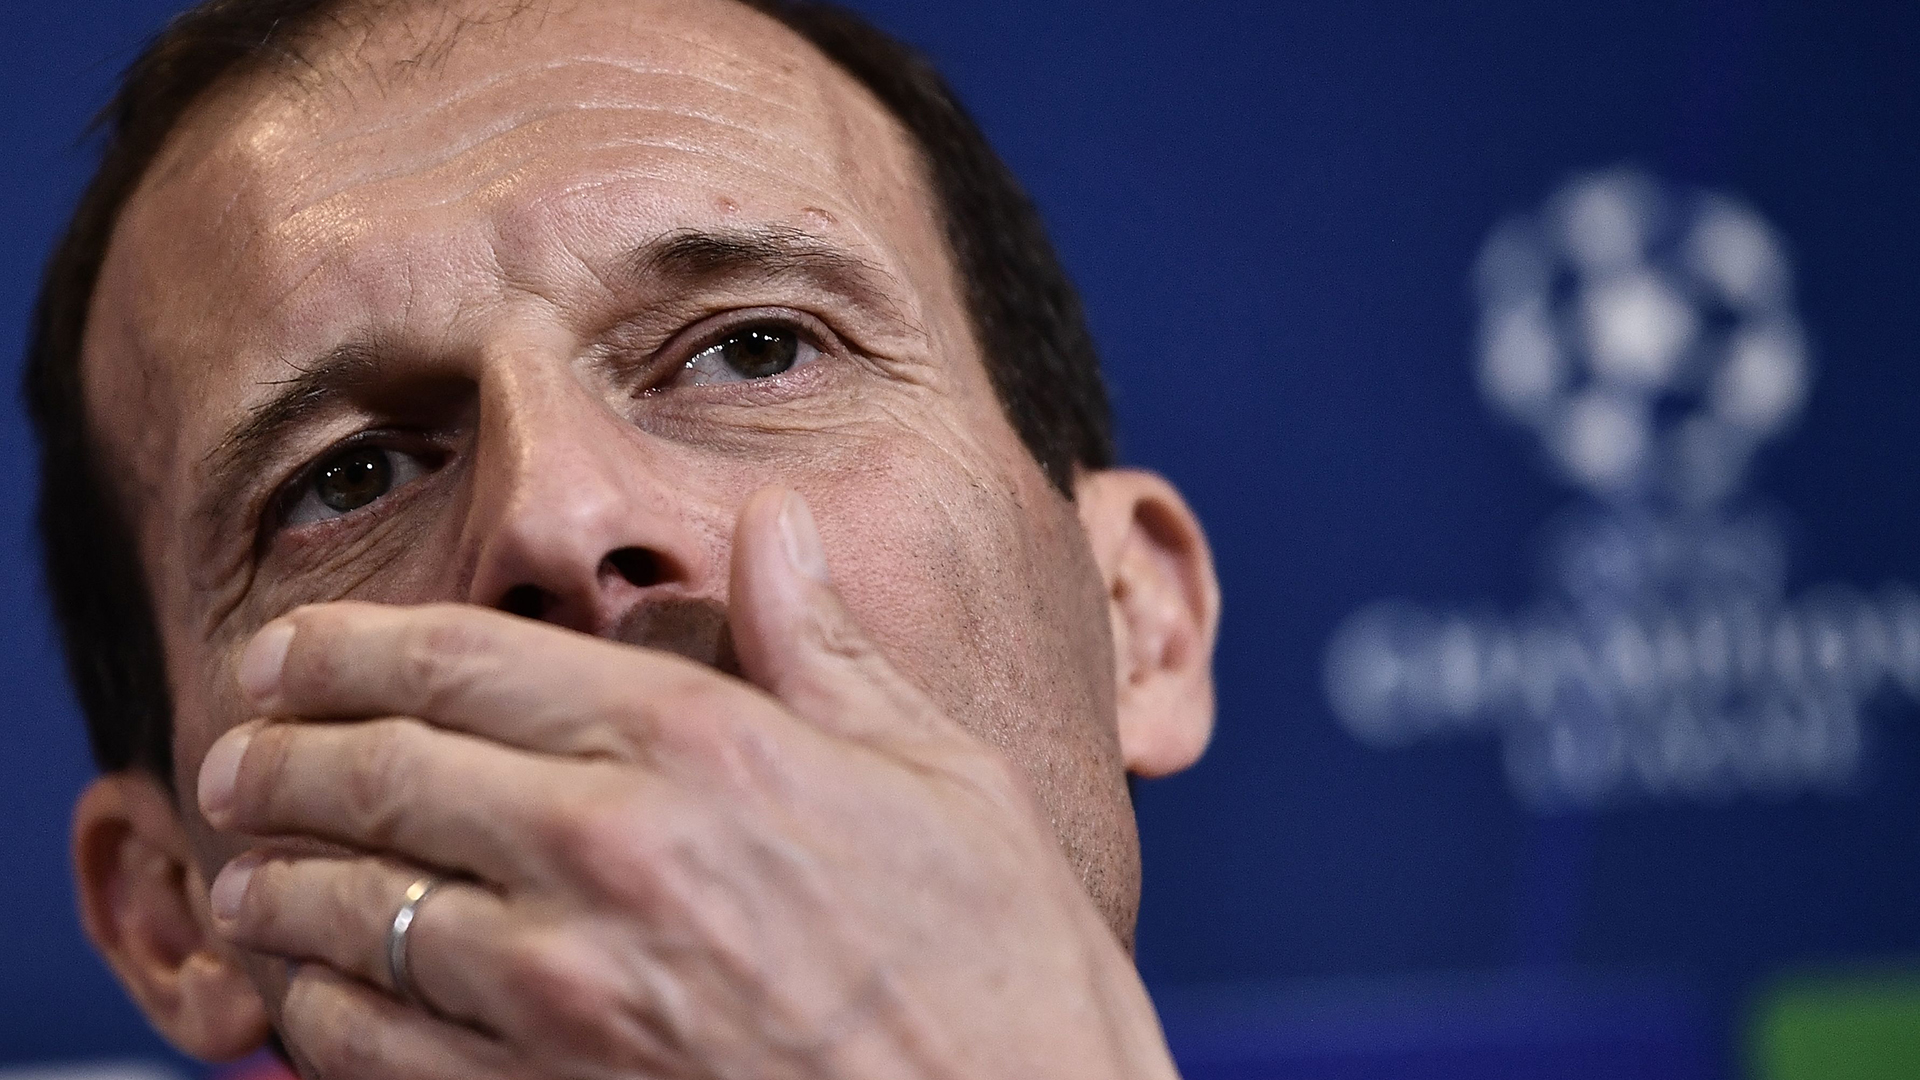 Juventus confirm coach Allegri will leave club at end of season